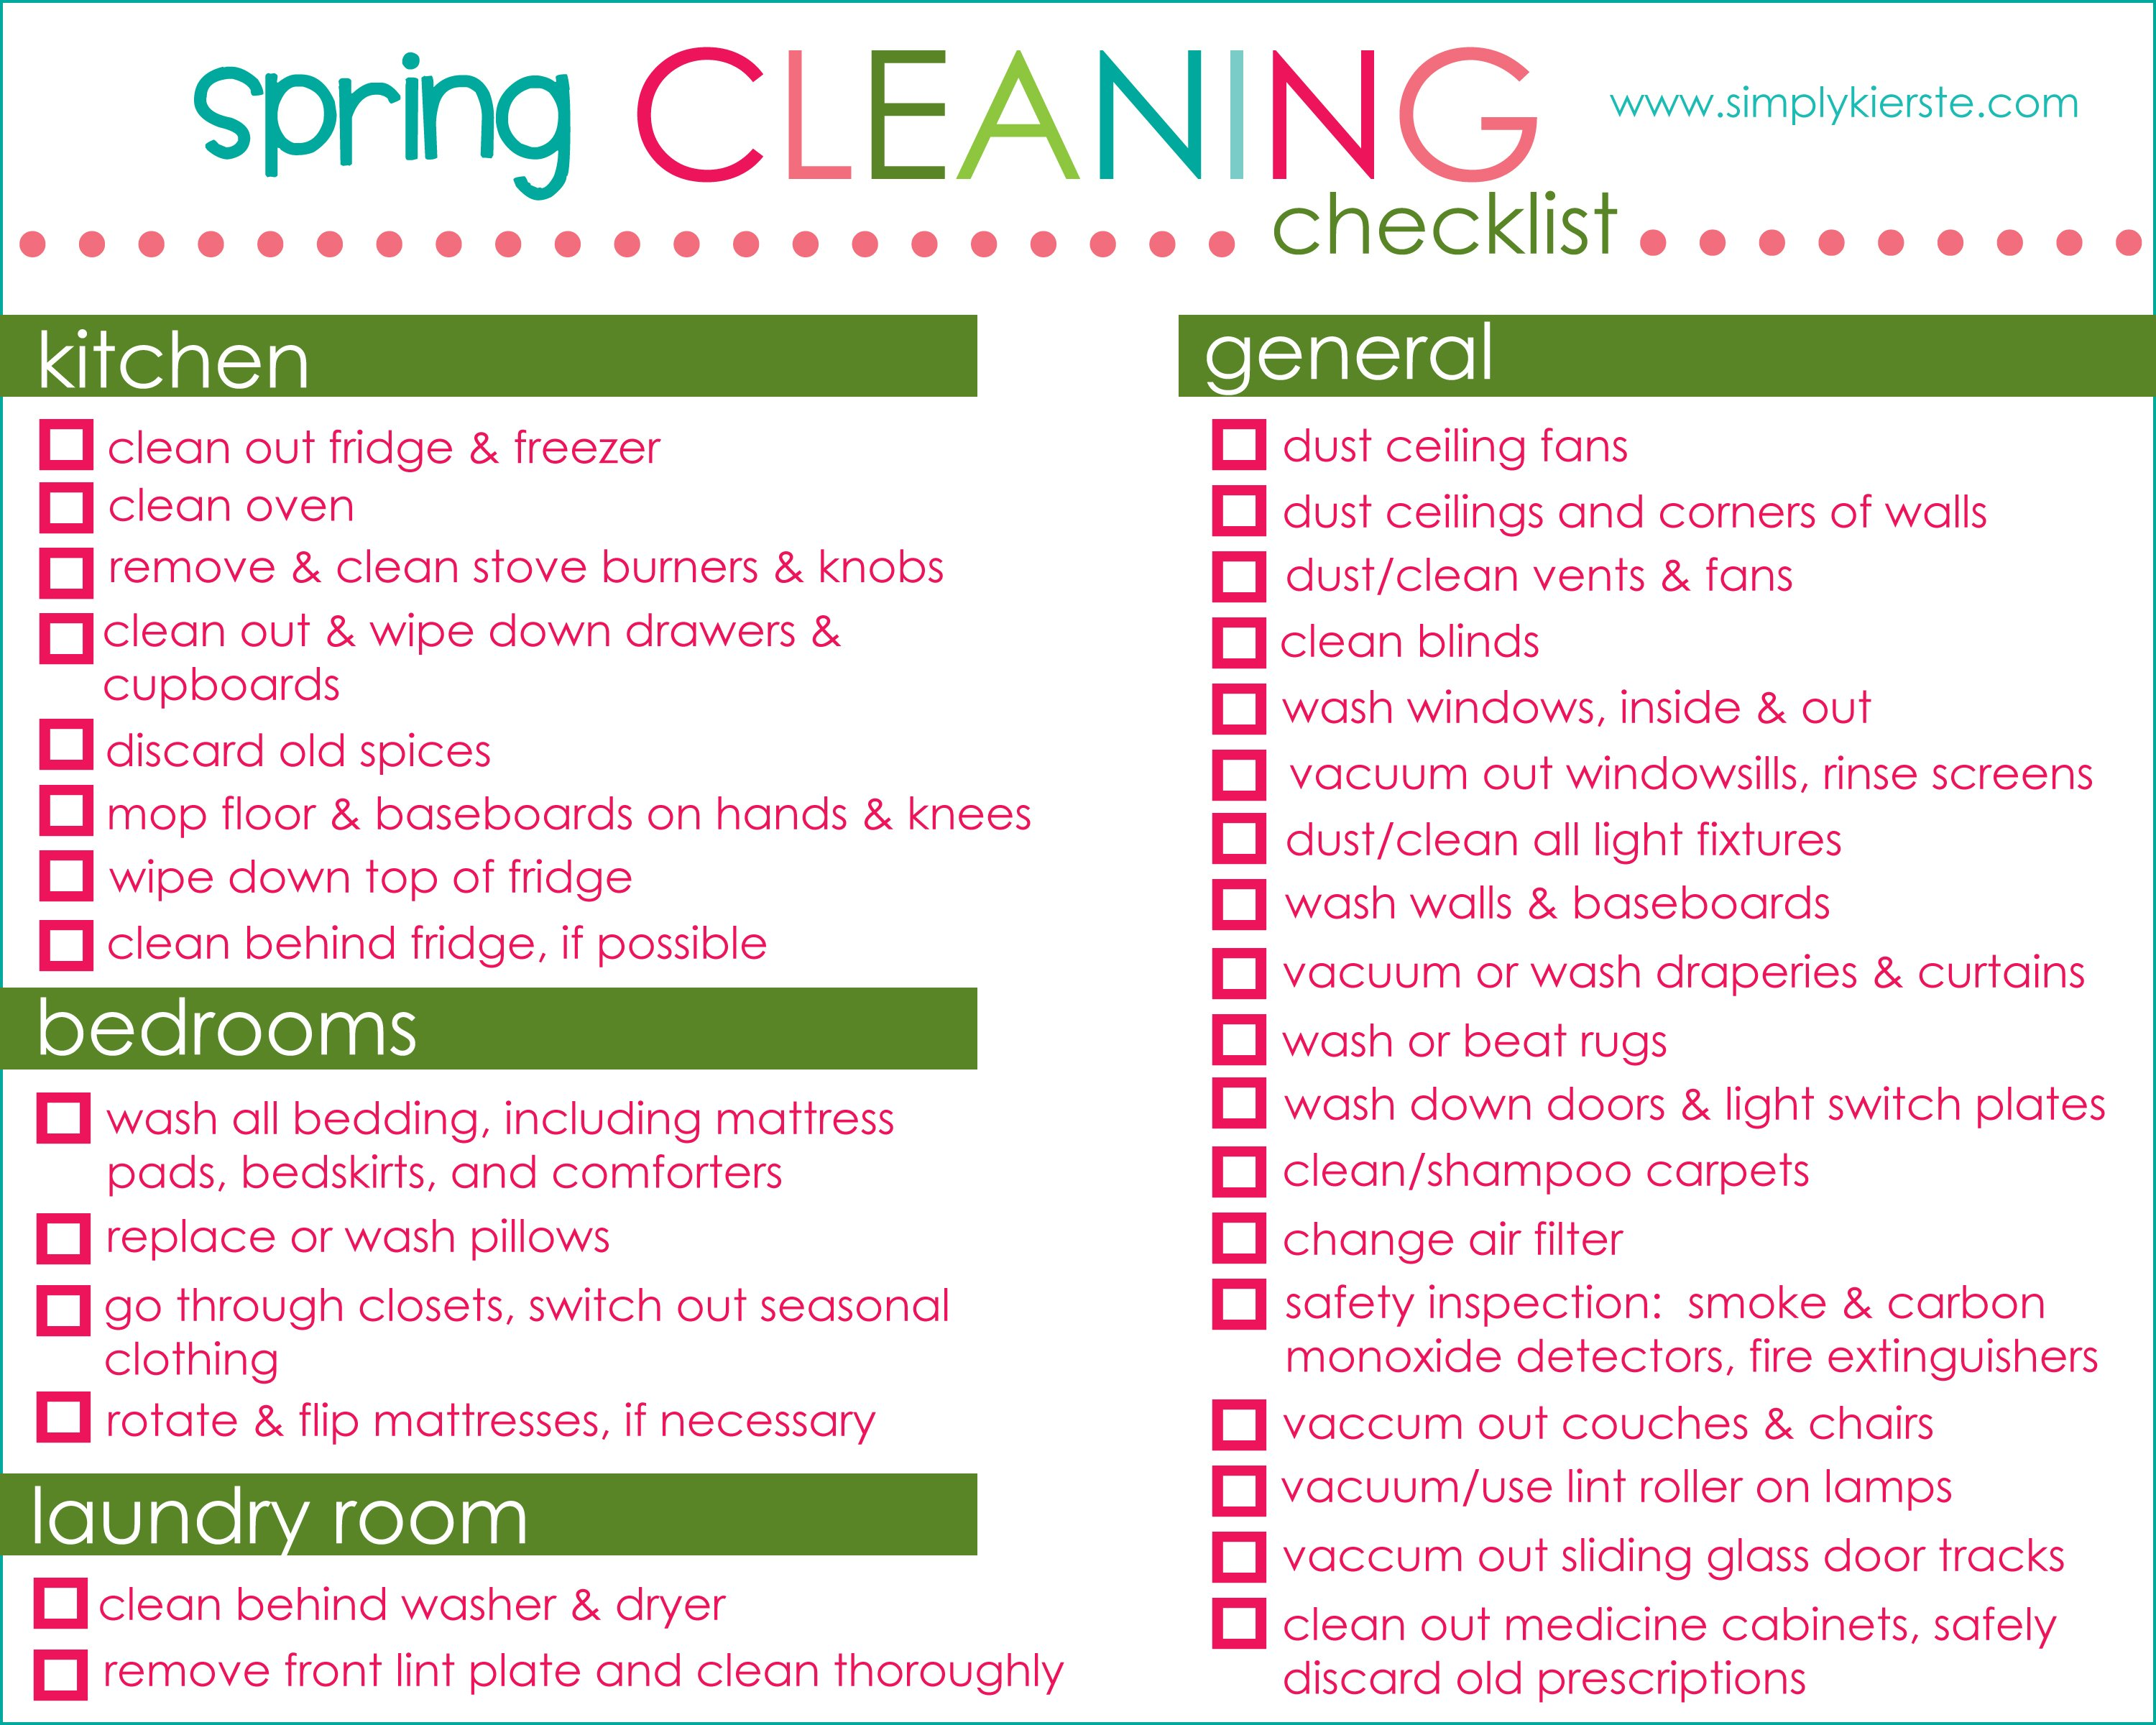 Spring Cleaning Checklist spring cleaning checklist, tips & free printable | simplykierste